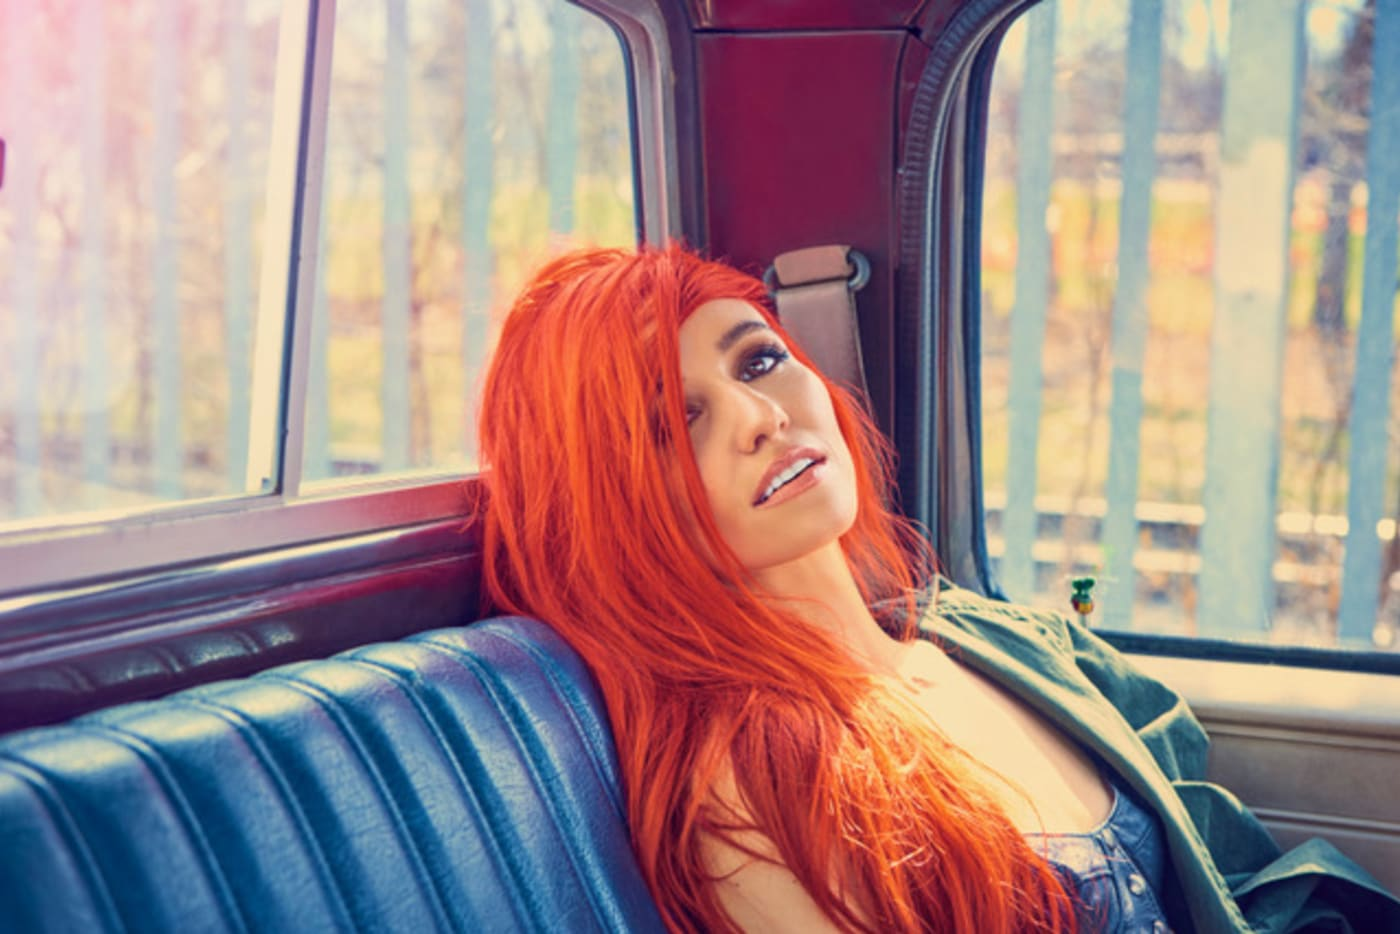 Lights is Not Only Headlining NXNE, But She's Also a Talented Artist